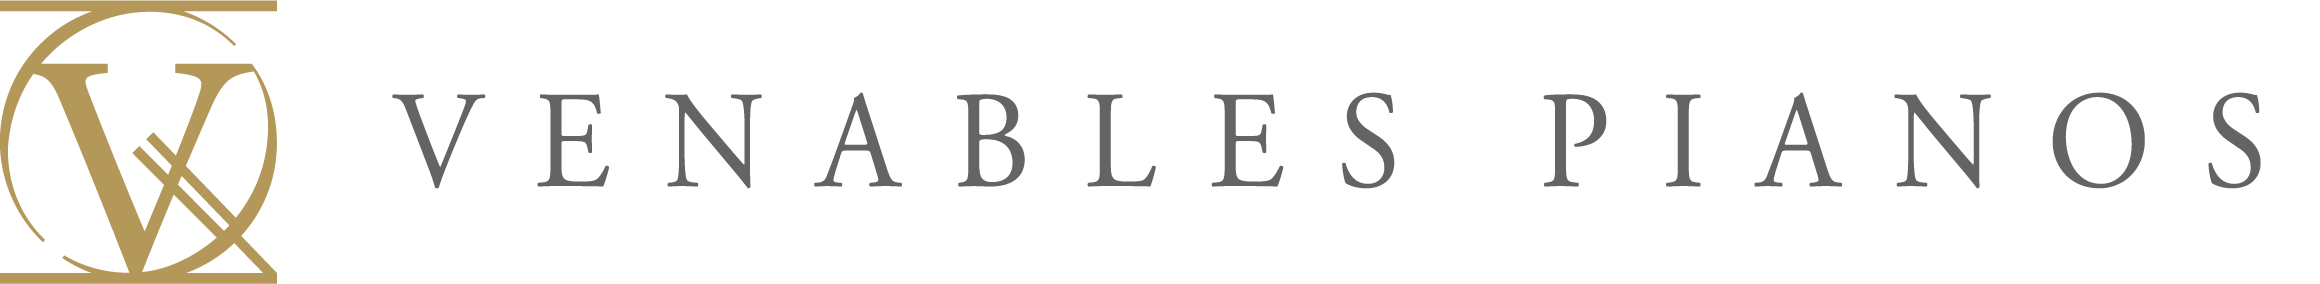 Venables Pianos Logo